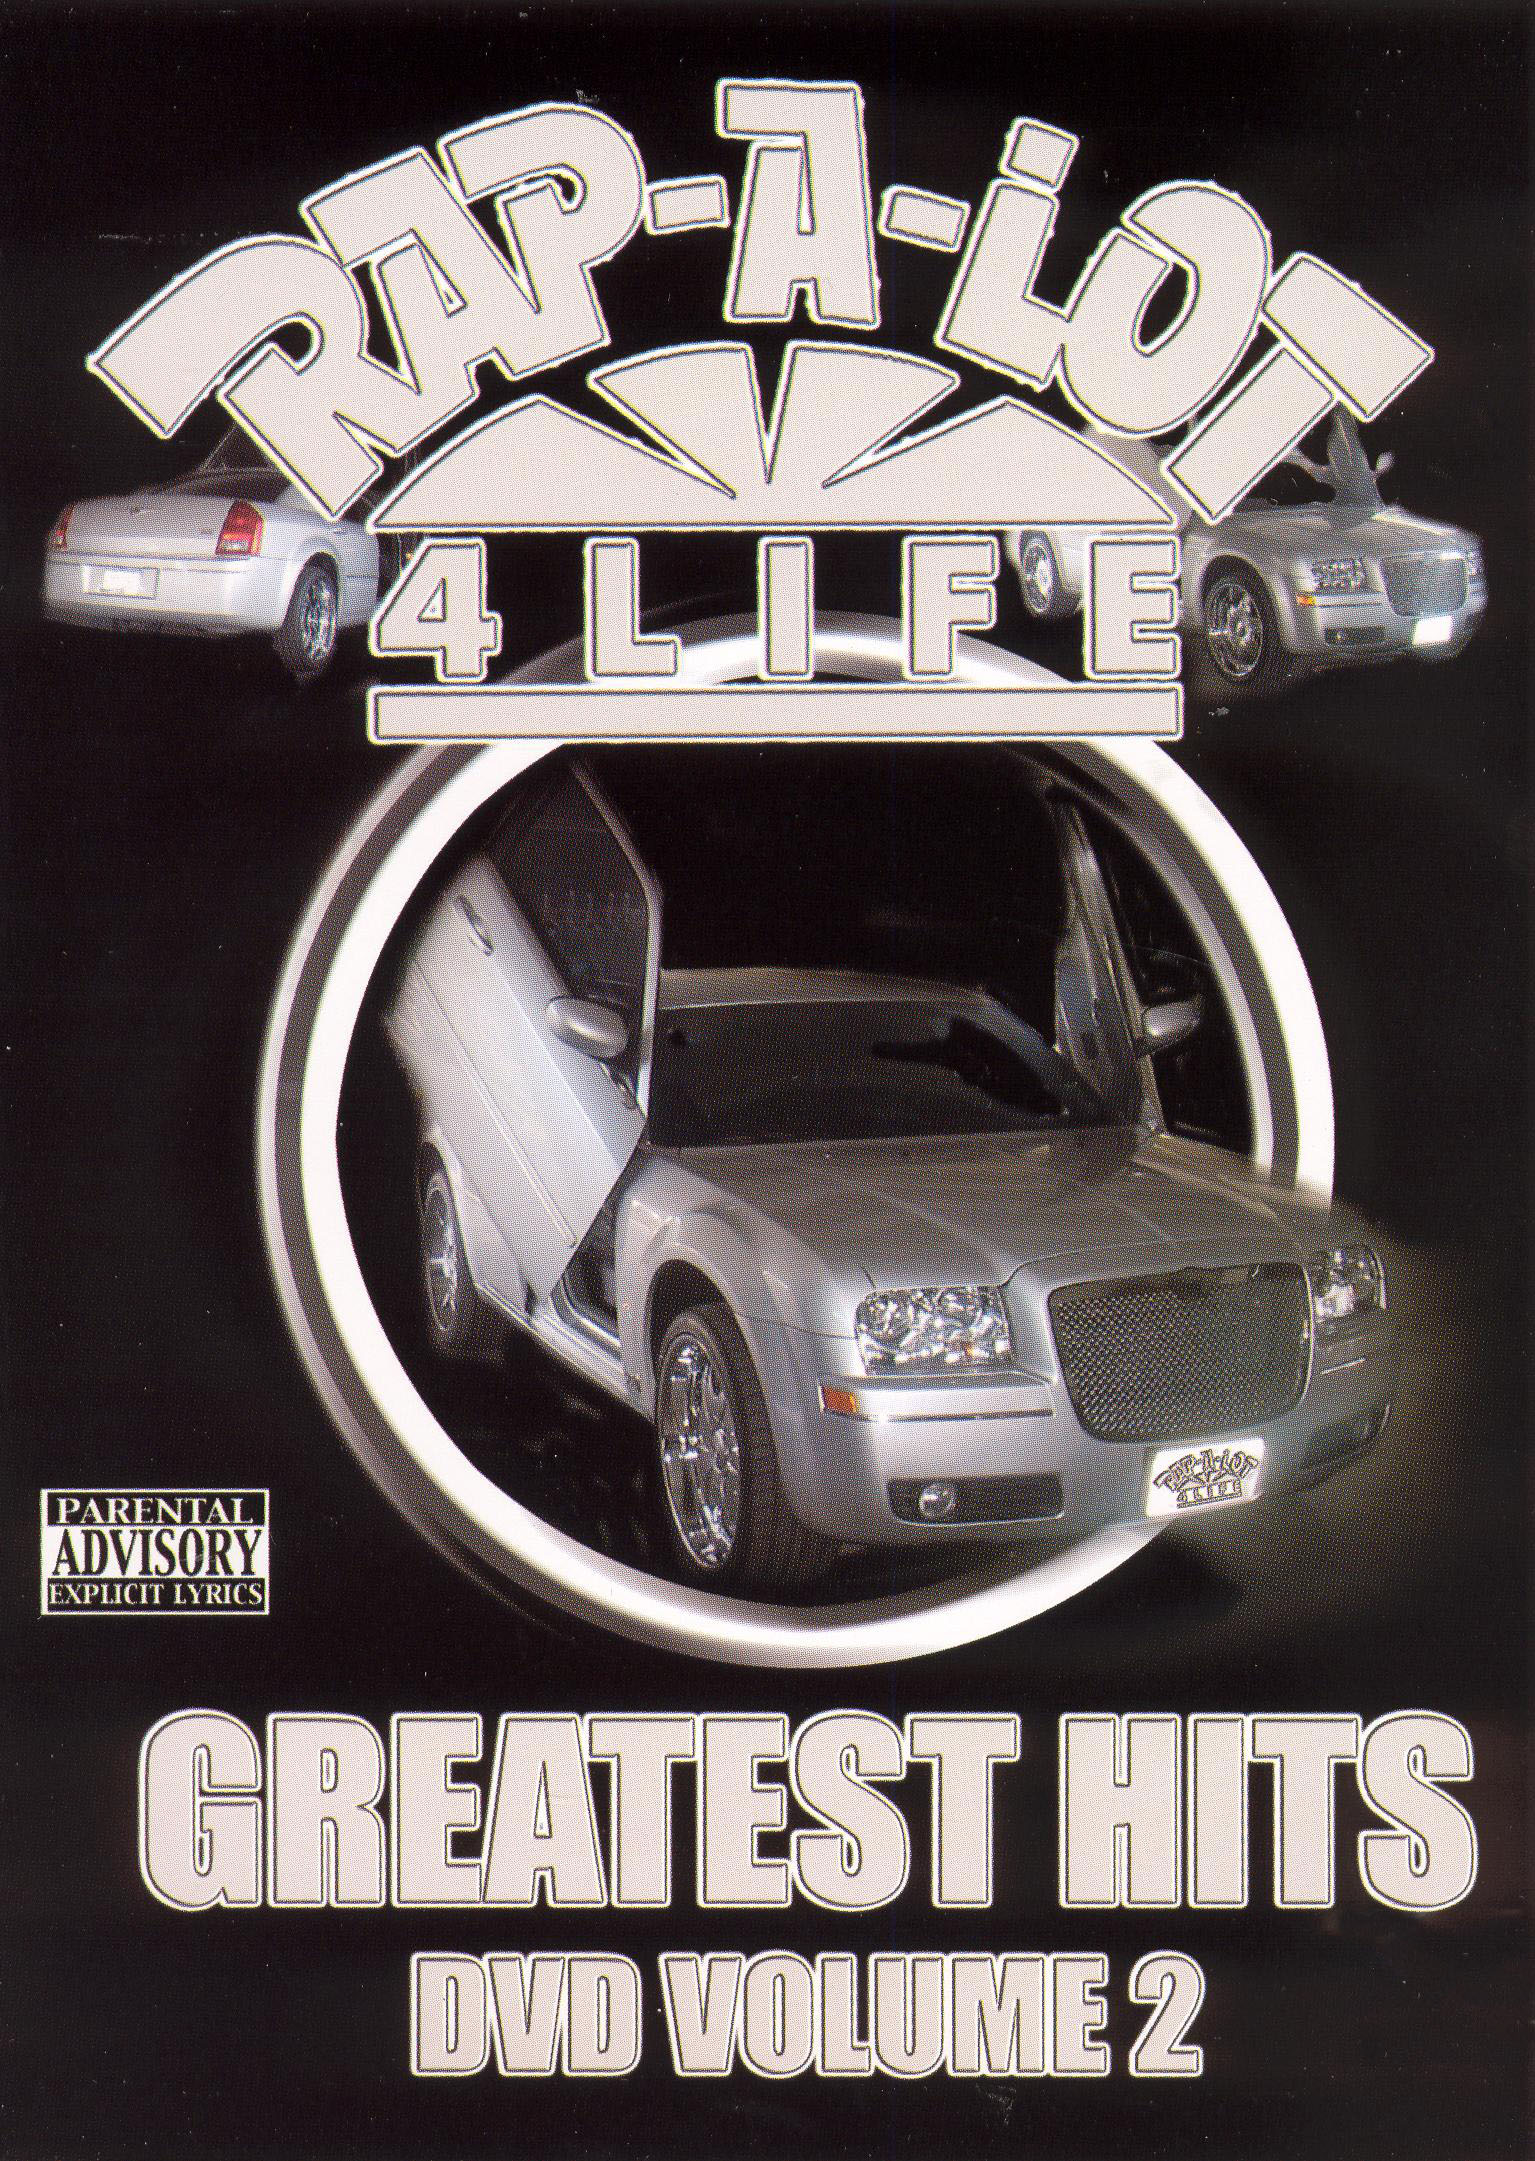 Rap-A-Lot Greatest Hits DVD, Vol. 2